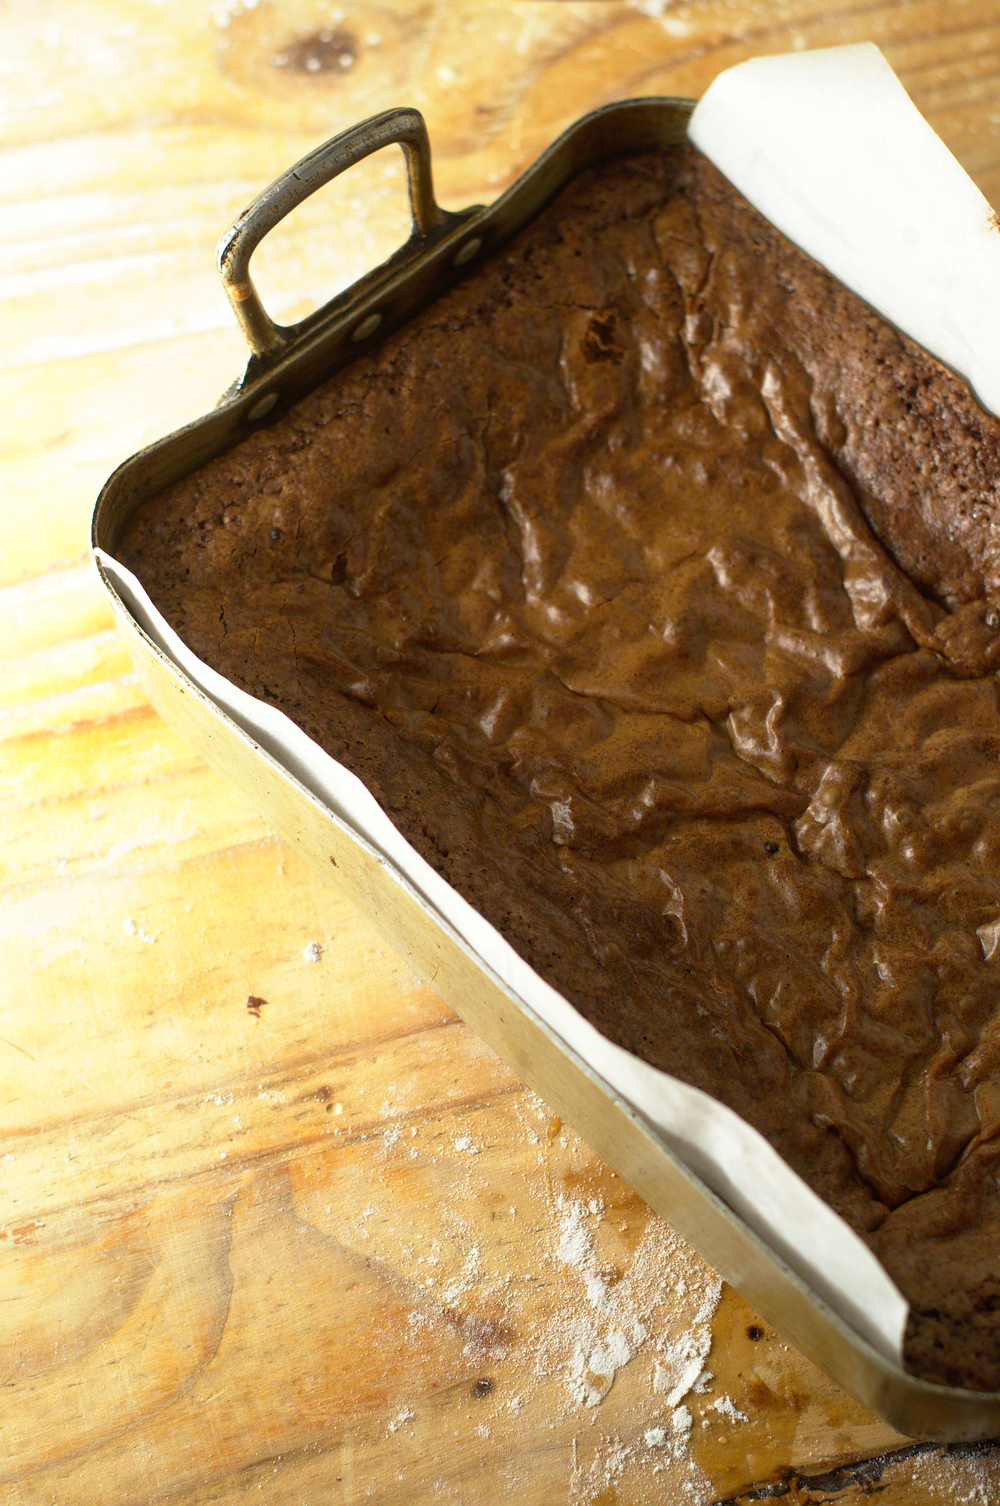 Brownies Edibles marijuana infused THC cannabis